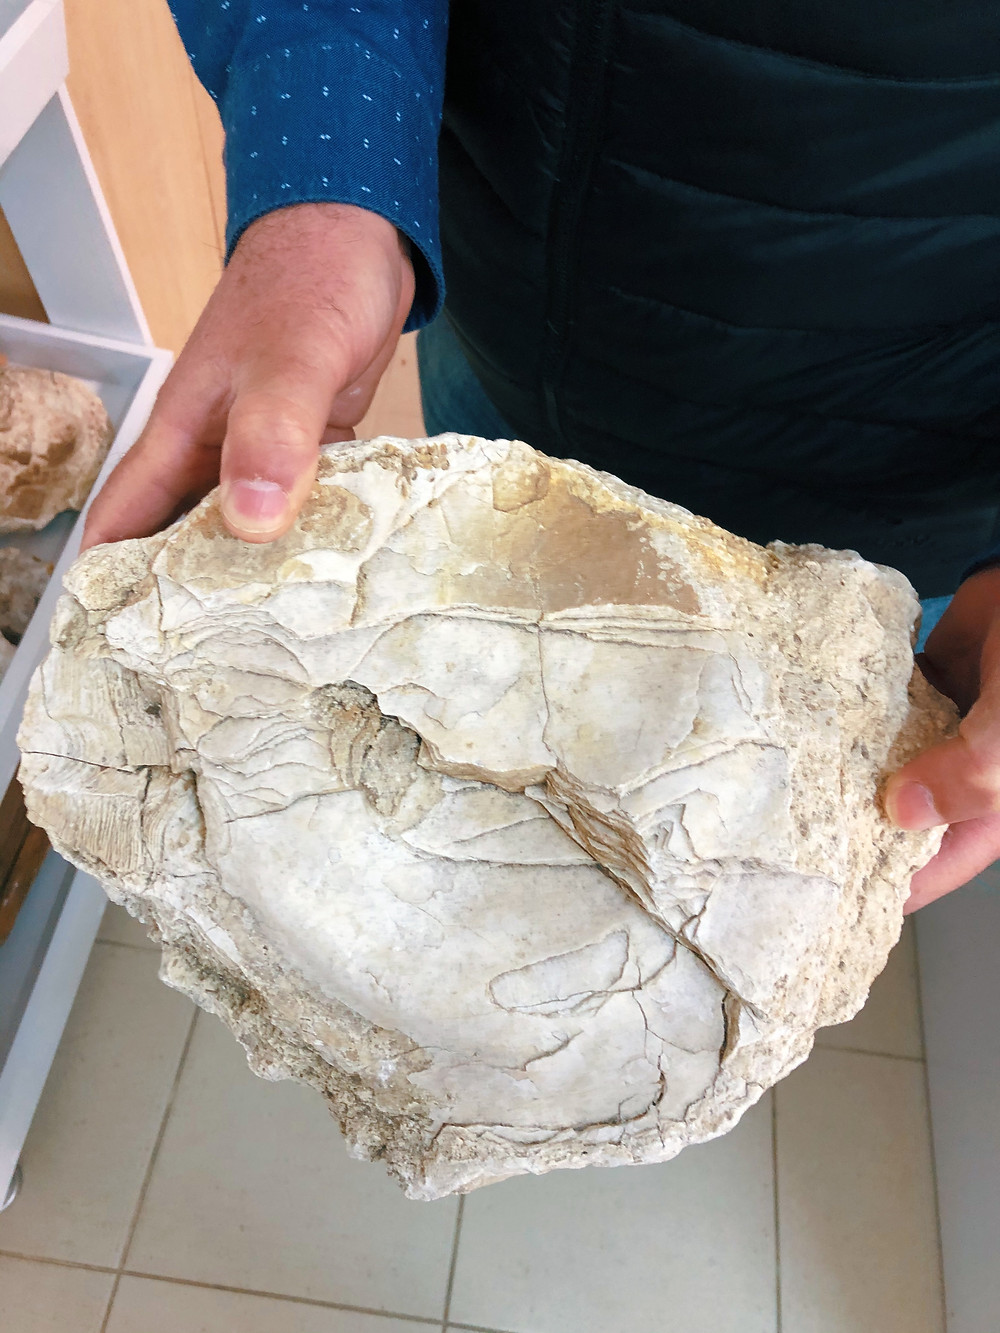 Fossilized oysters found in Trakya Turkey on Chamlija's vineyards during a wine tasting tour